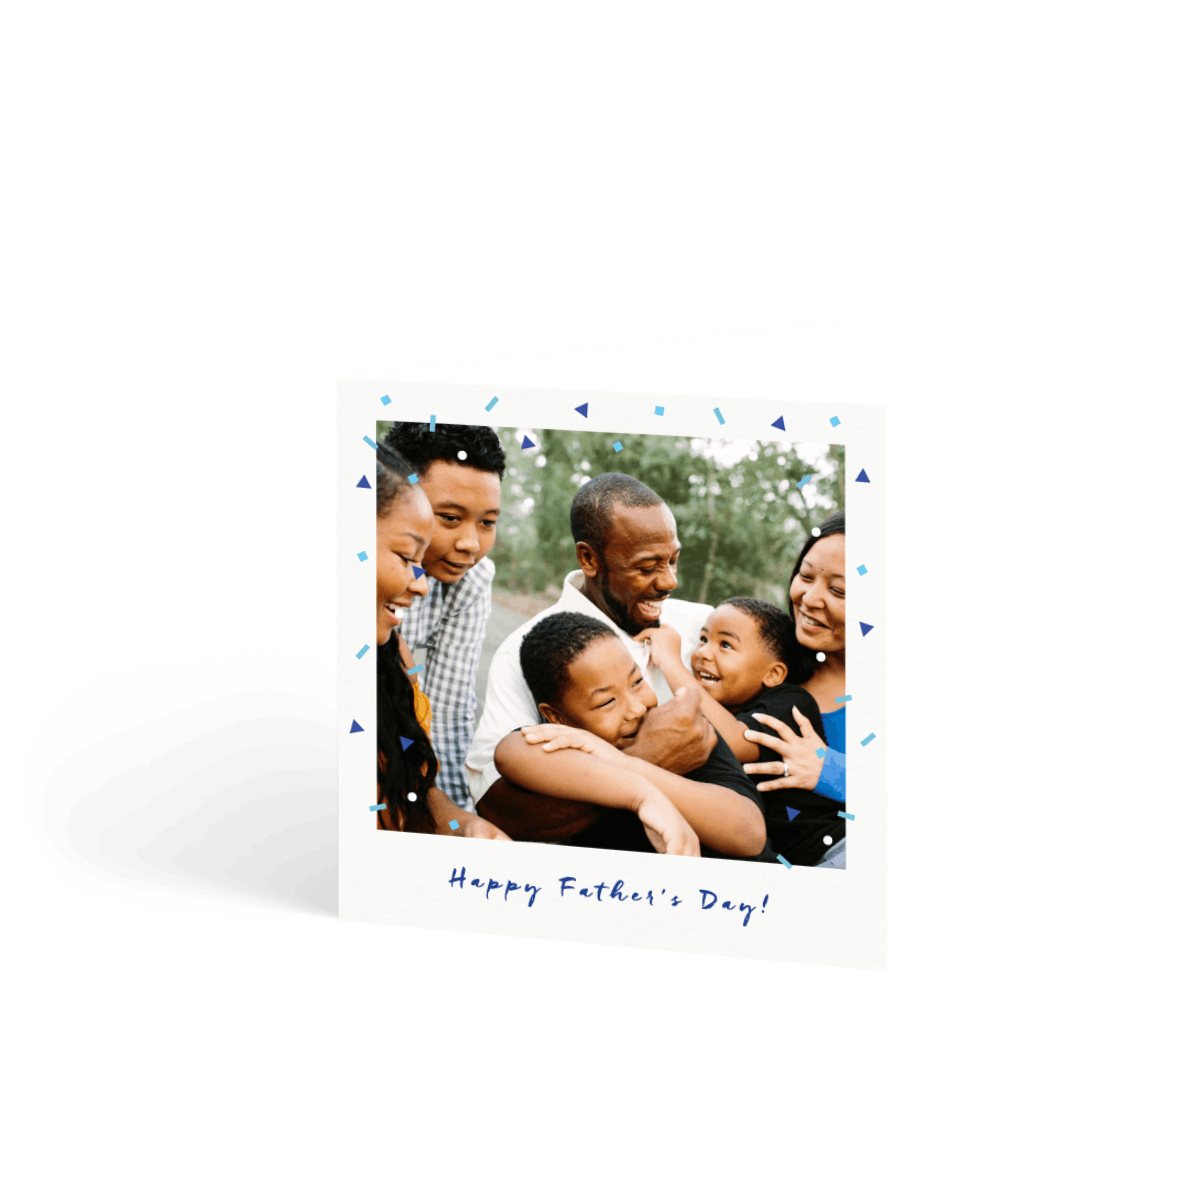 Https%3a%2f%2fwww.papier.com%2fproduct image%2f7319%2f16%2ffather s day blue confetti 1799 front 1463138540.png?ixlib=rb 1.1